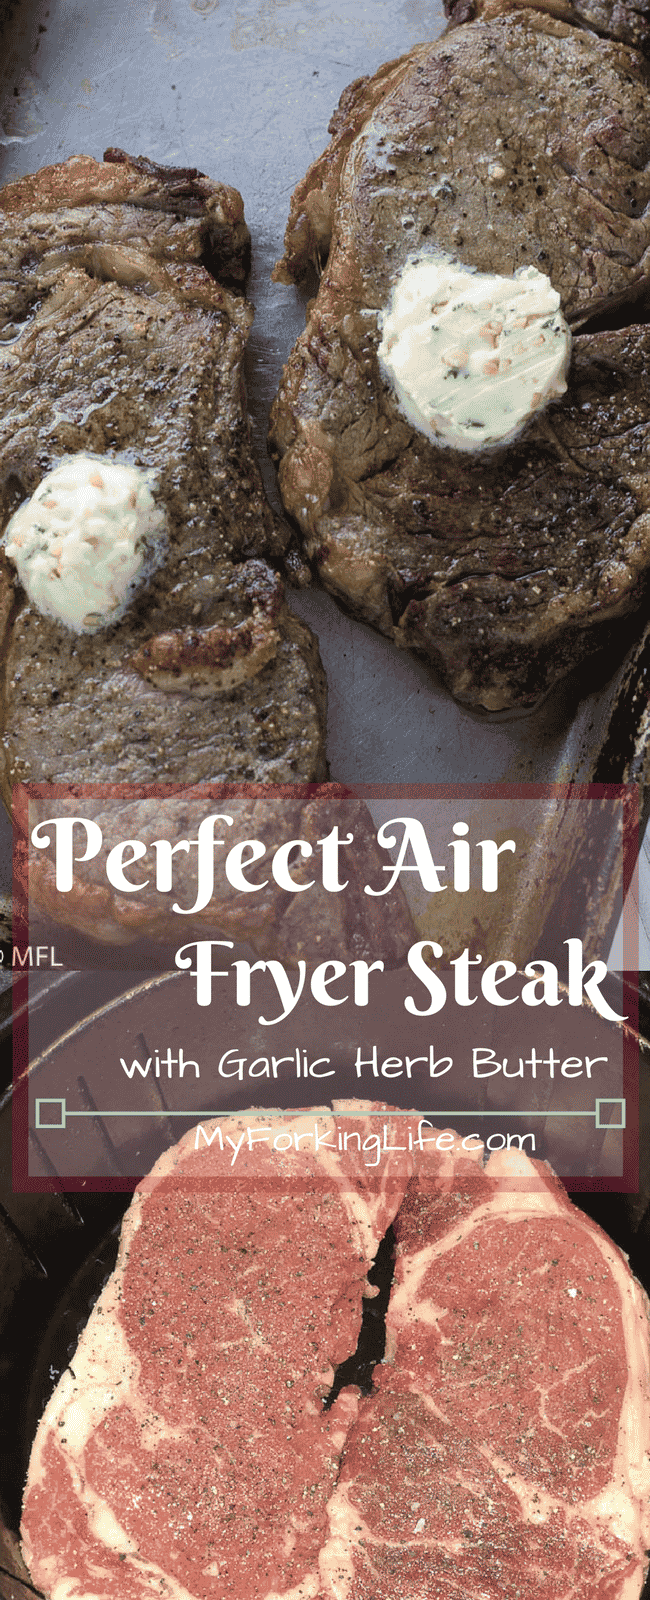 Perfect Air Fryer Steak with Garlic Herb Butter. Create the perfect steak in your air fryer. Tried and true method of creating juicy and delicious steak. #airfryerrecipes #airfryer #airfryersteak #ribeye #ribeyesteak #flavouredbutter #garlicherbbutter #delicioussteak @airfryerrecipe